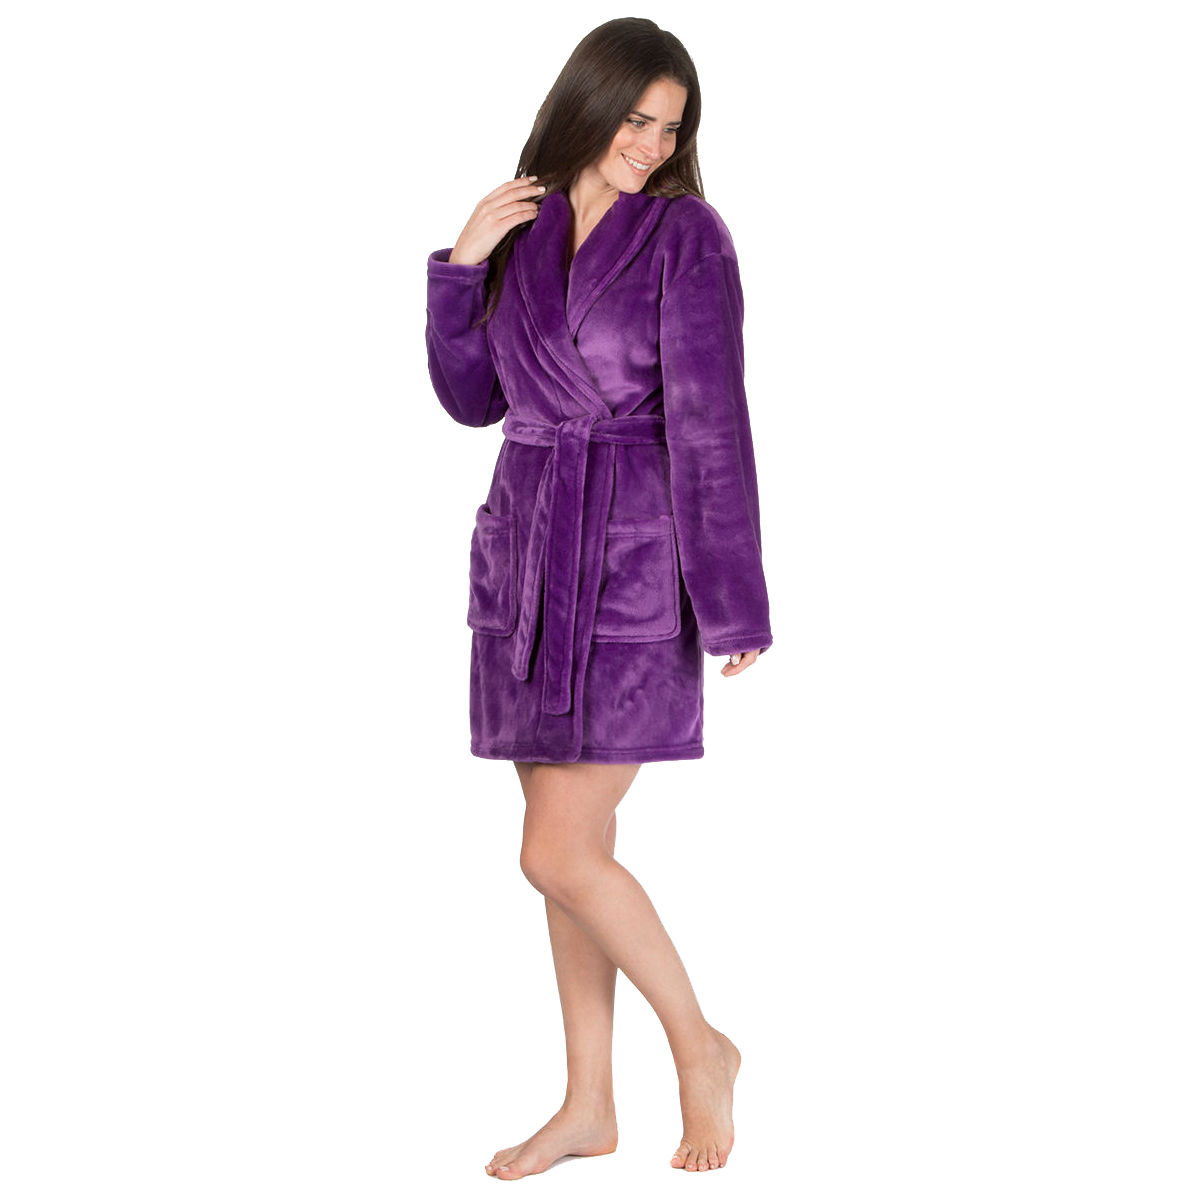 Ladies Forever Dreaming Novelty Dressing Gown Bed Coat Shawl Snuggle Top